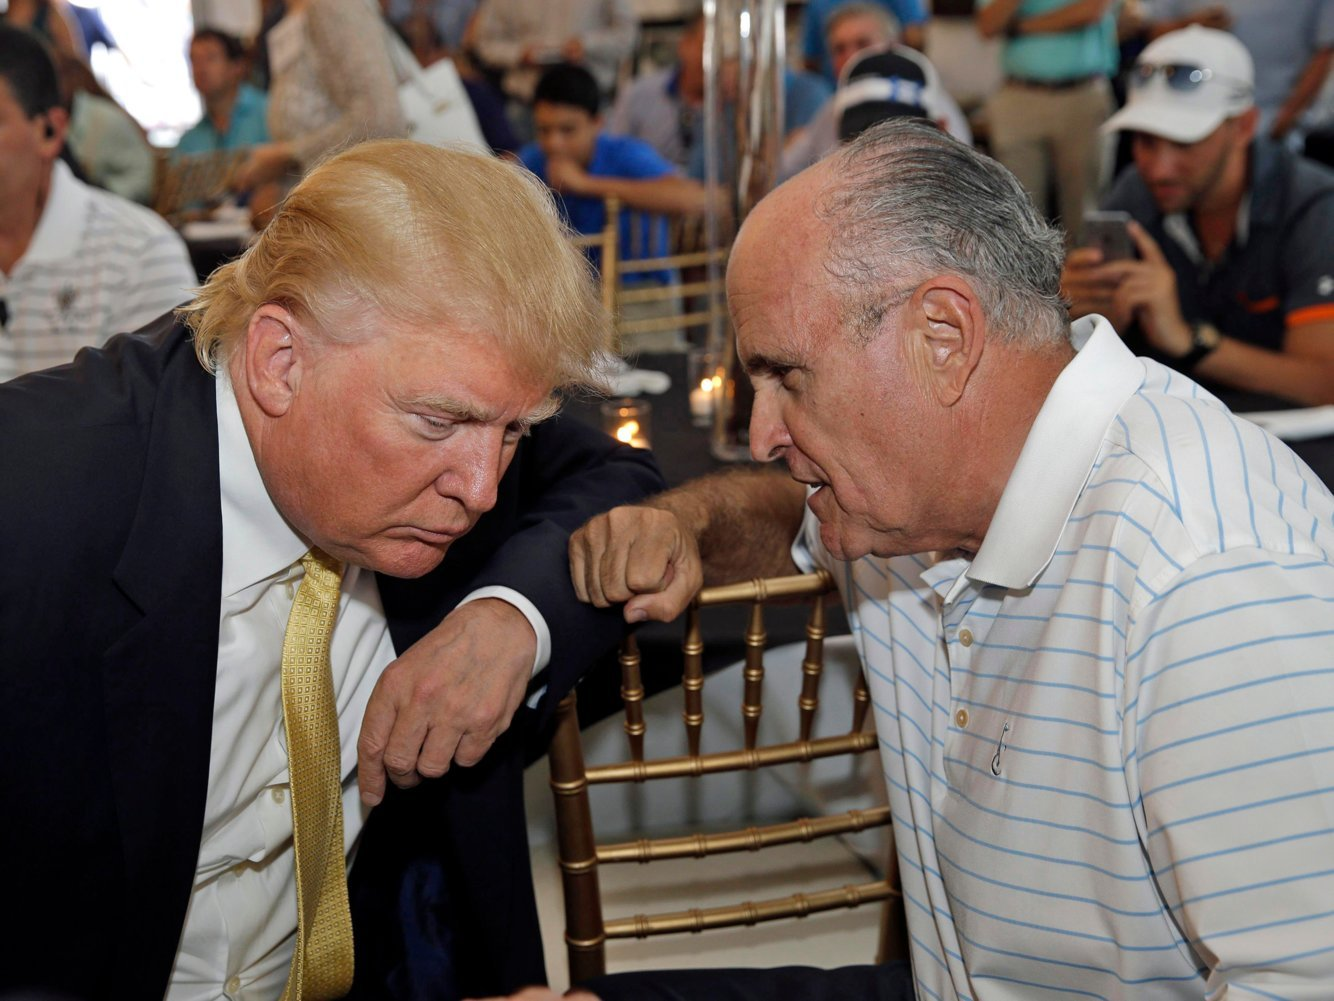 8 Trump officials made stunning revelations about how the president and Giuliani weaponized the State Department